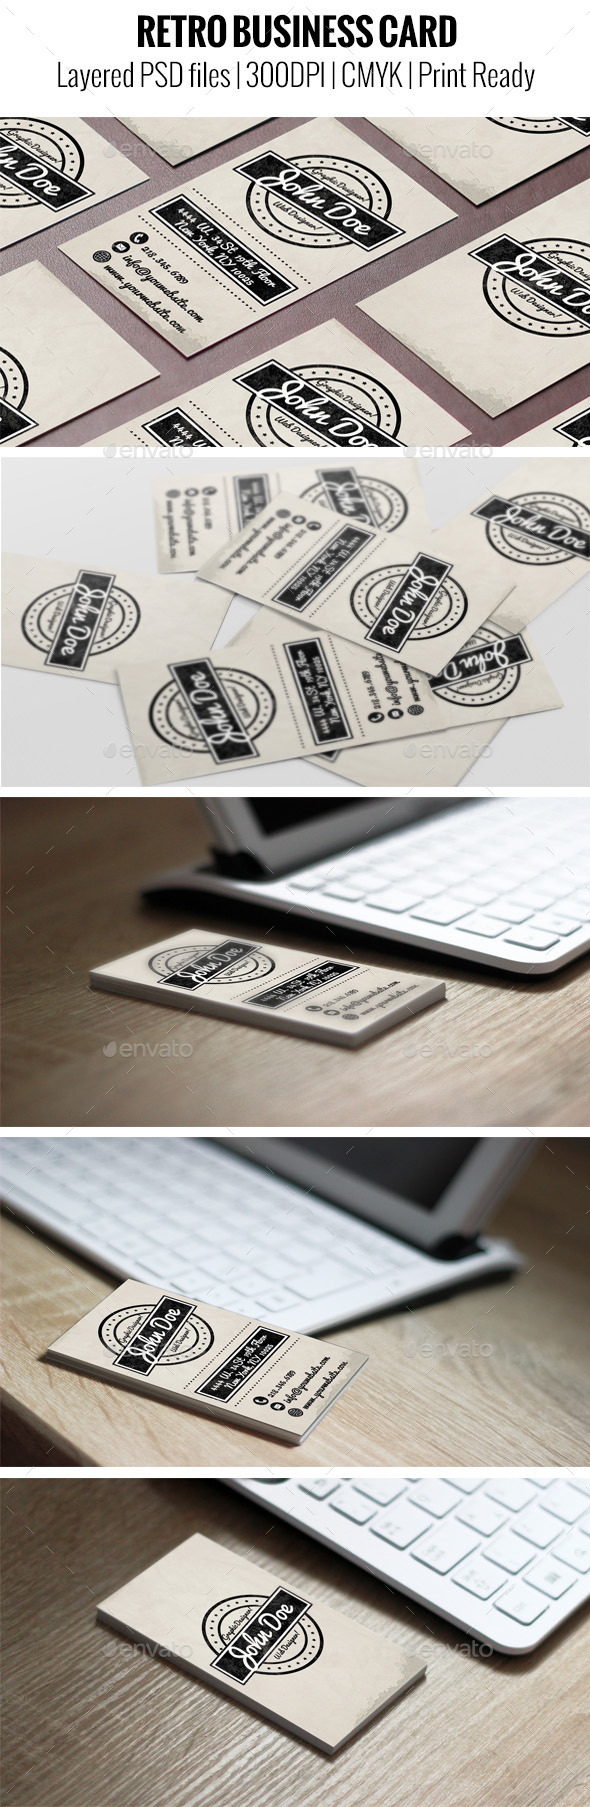 GraphicRiver Retro Business Card 11159438